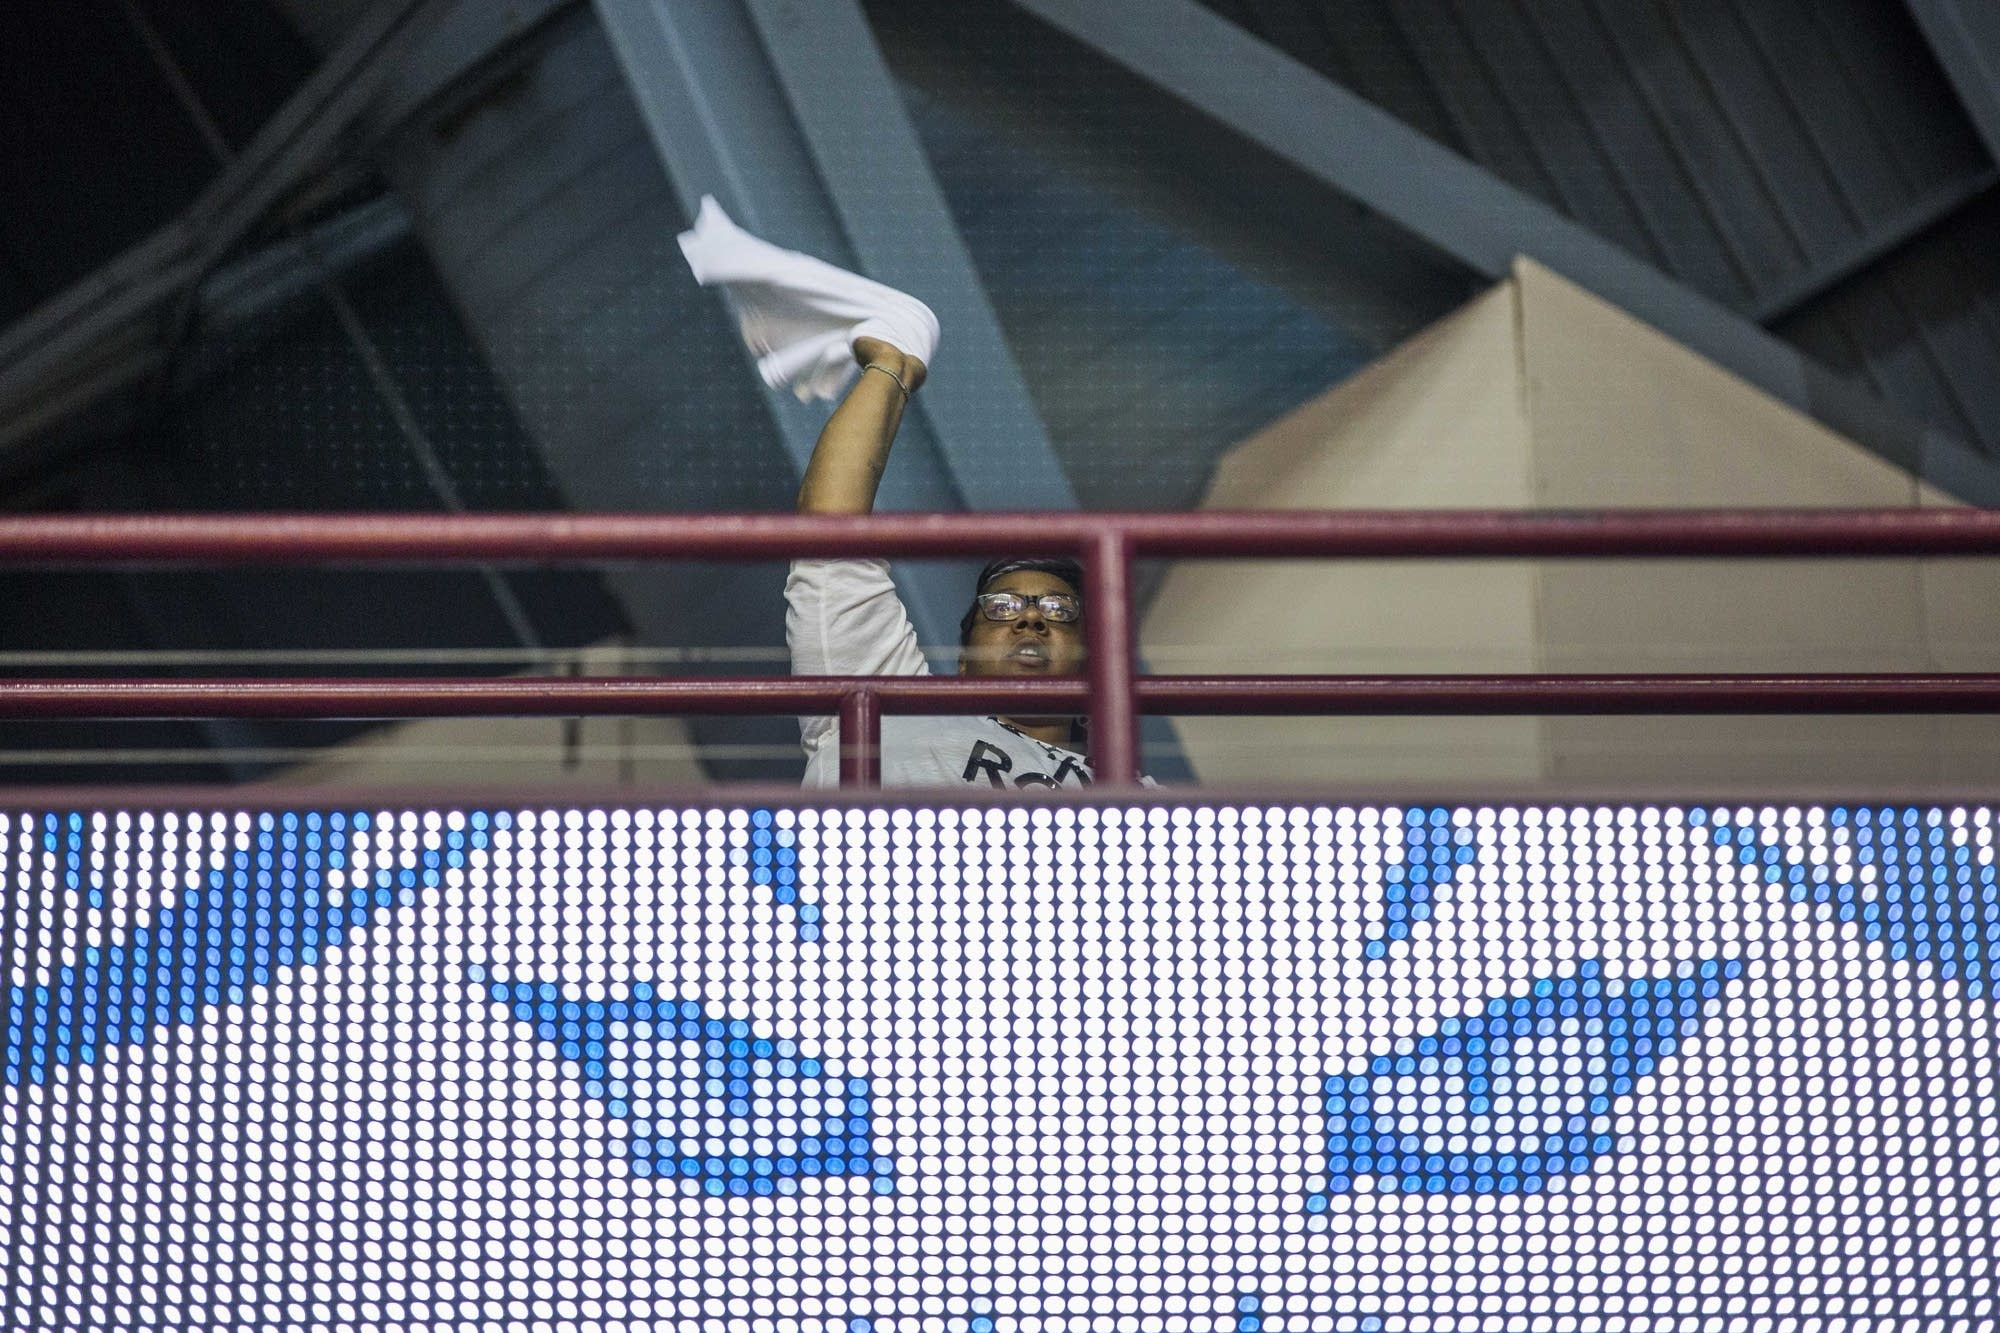 A Minnesota Lynx fan waves a towel in in the upper deck of Williams Arena.